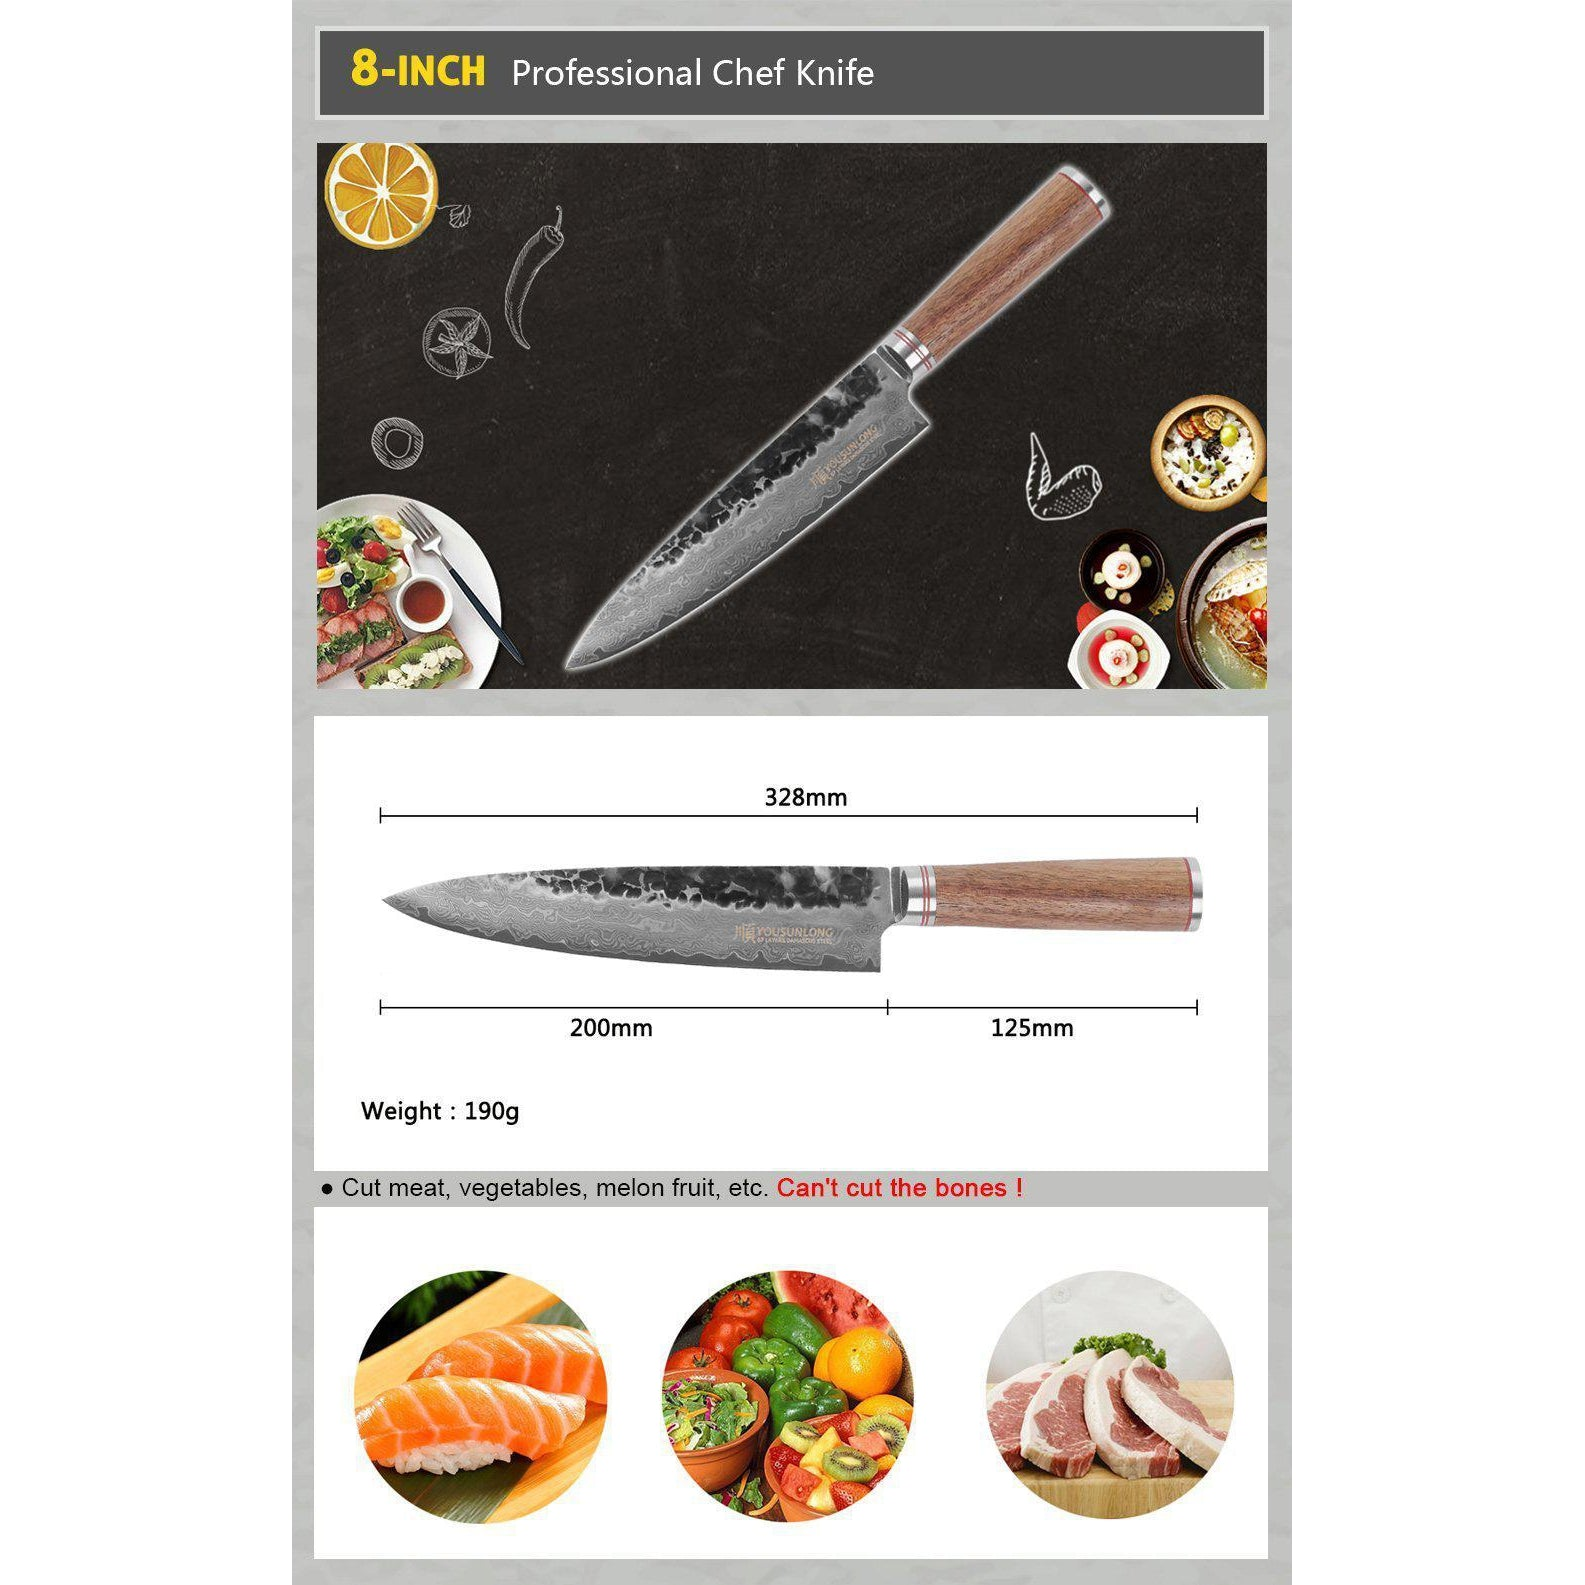 Sunlong 20cm Professional Chef Knife With Walnut Wood Handle-chef knife-Chef's Quality Cookware